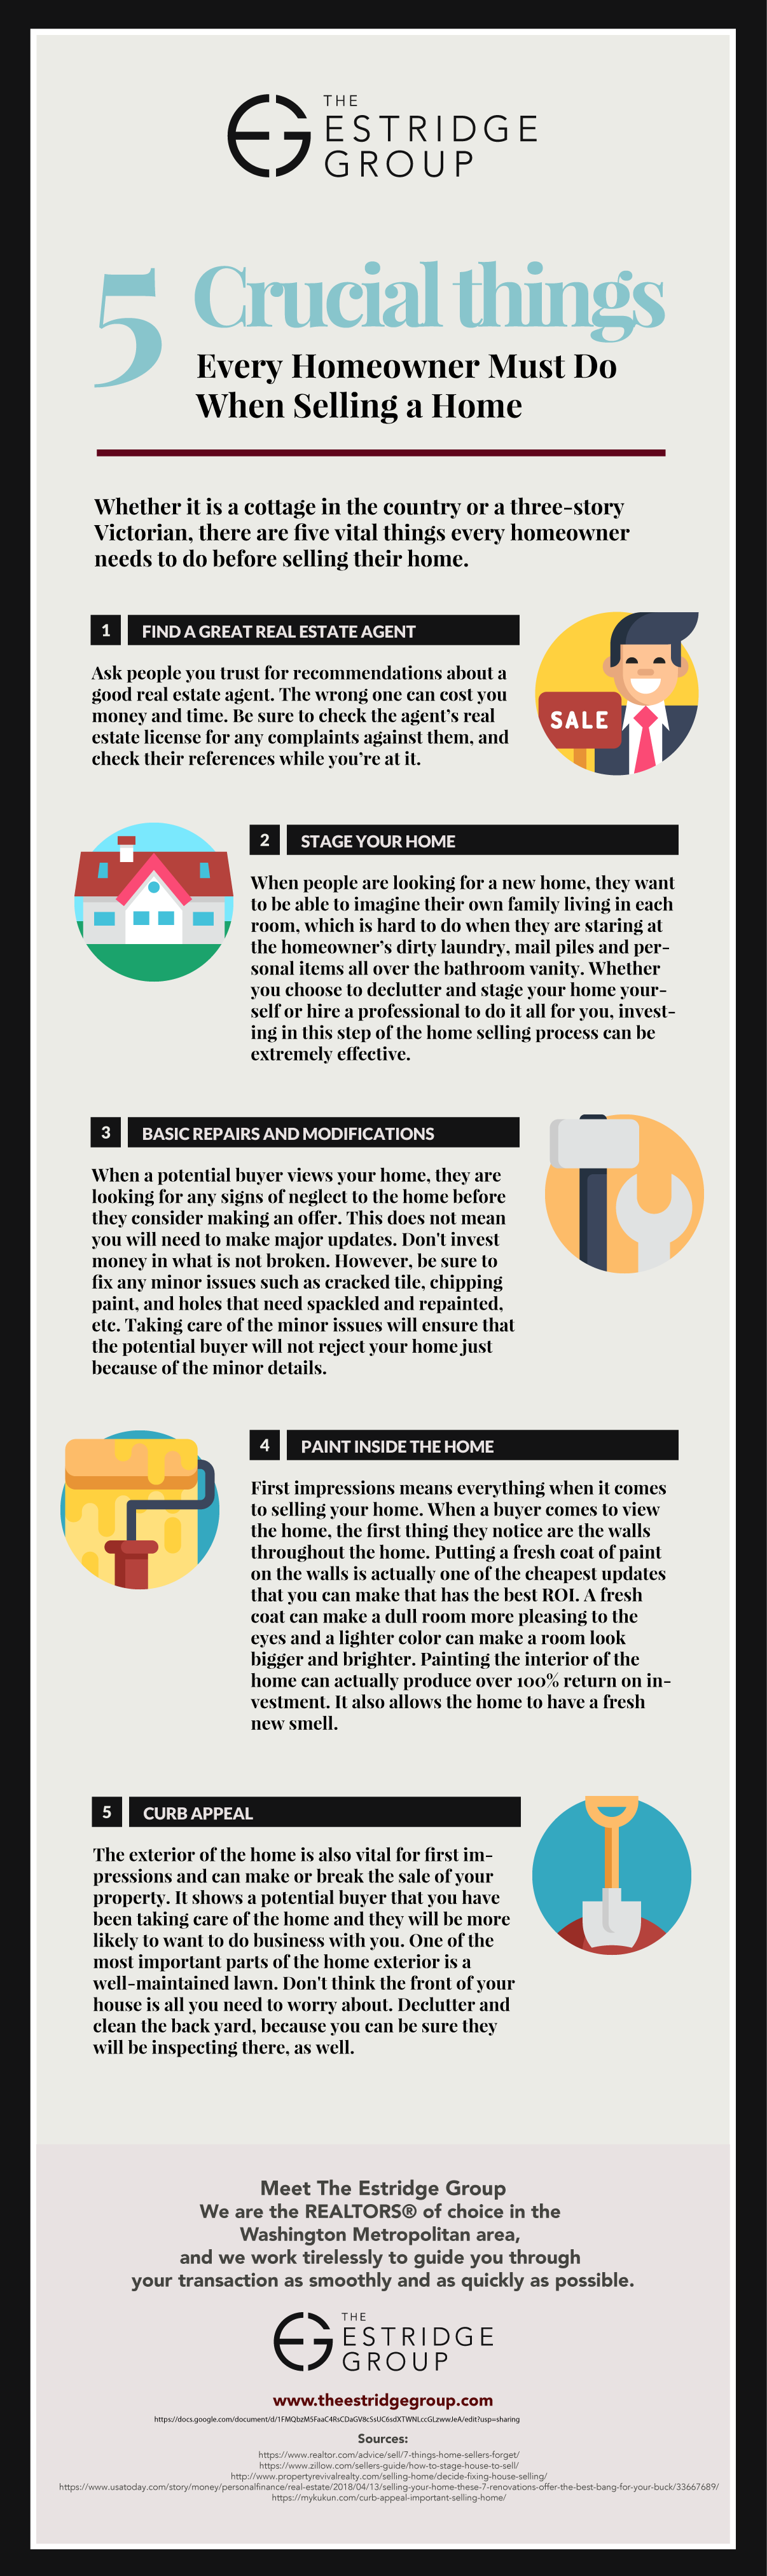 5-Crucial-things-Infographic-1